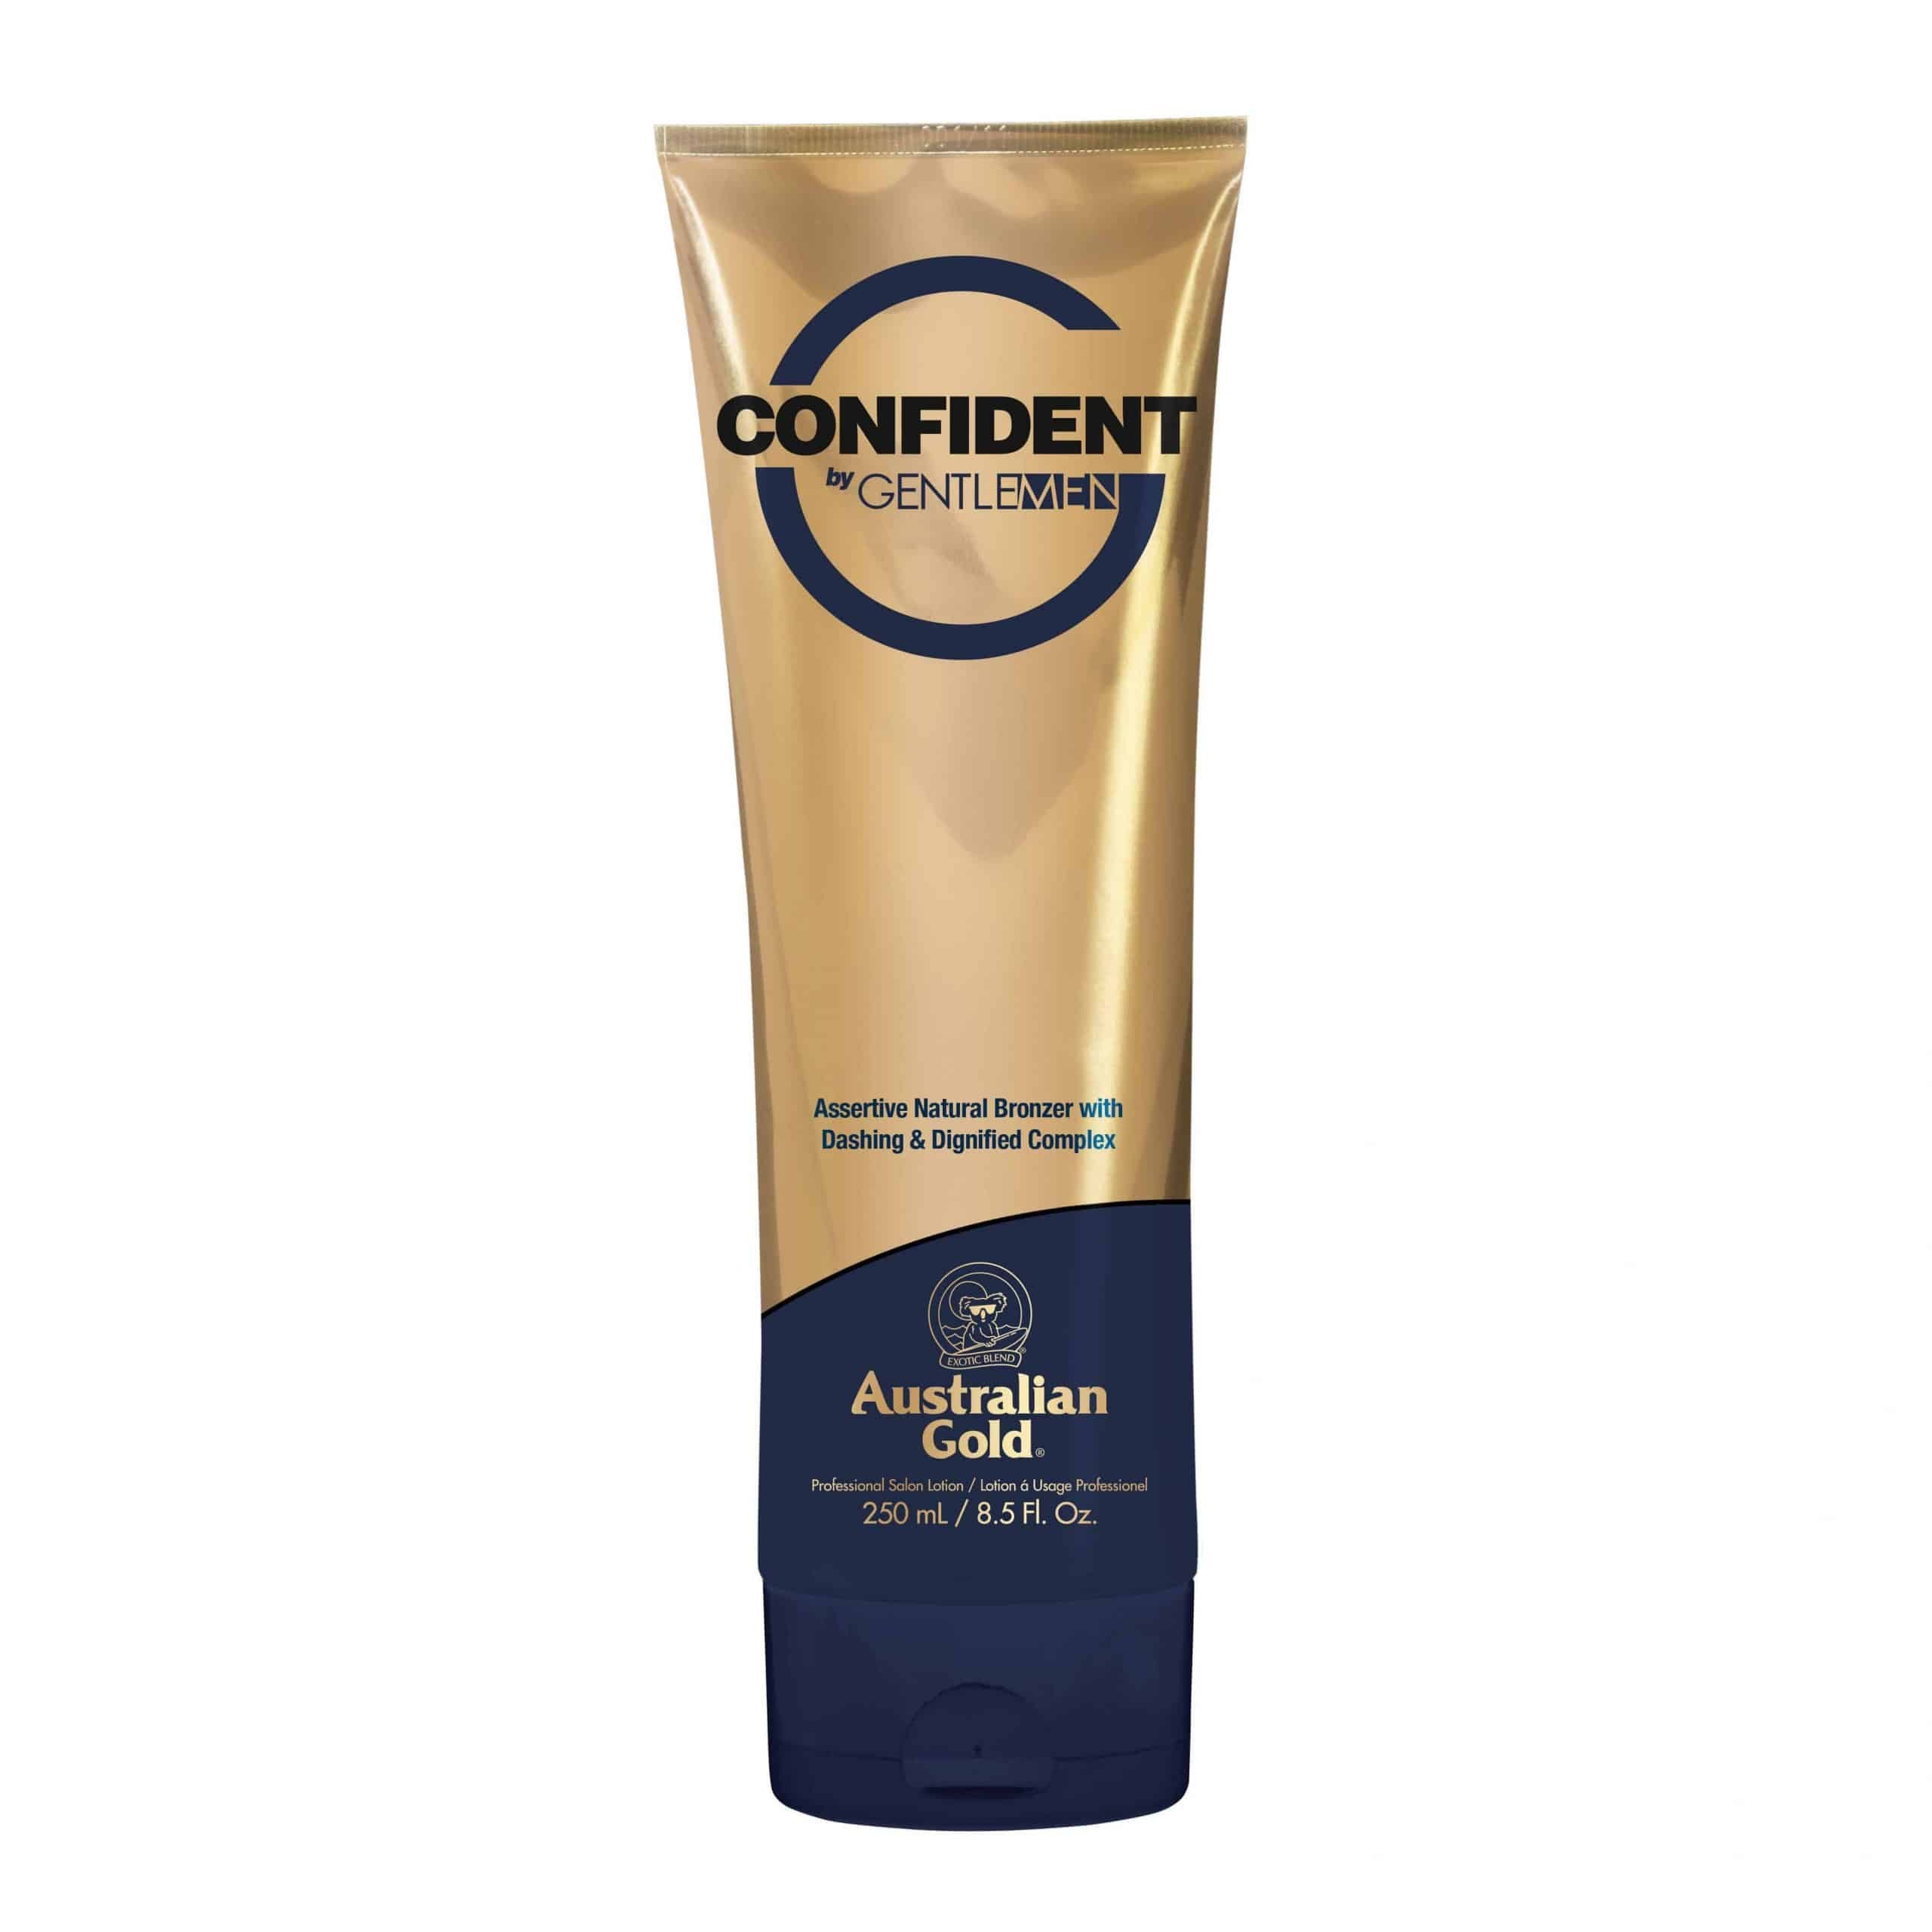 Confident By G Gentlemen